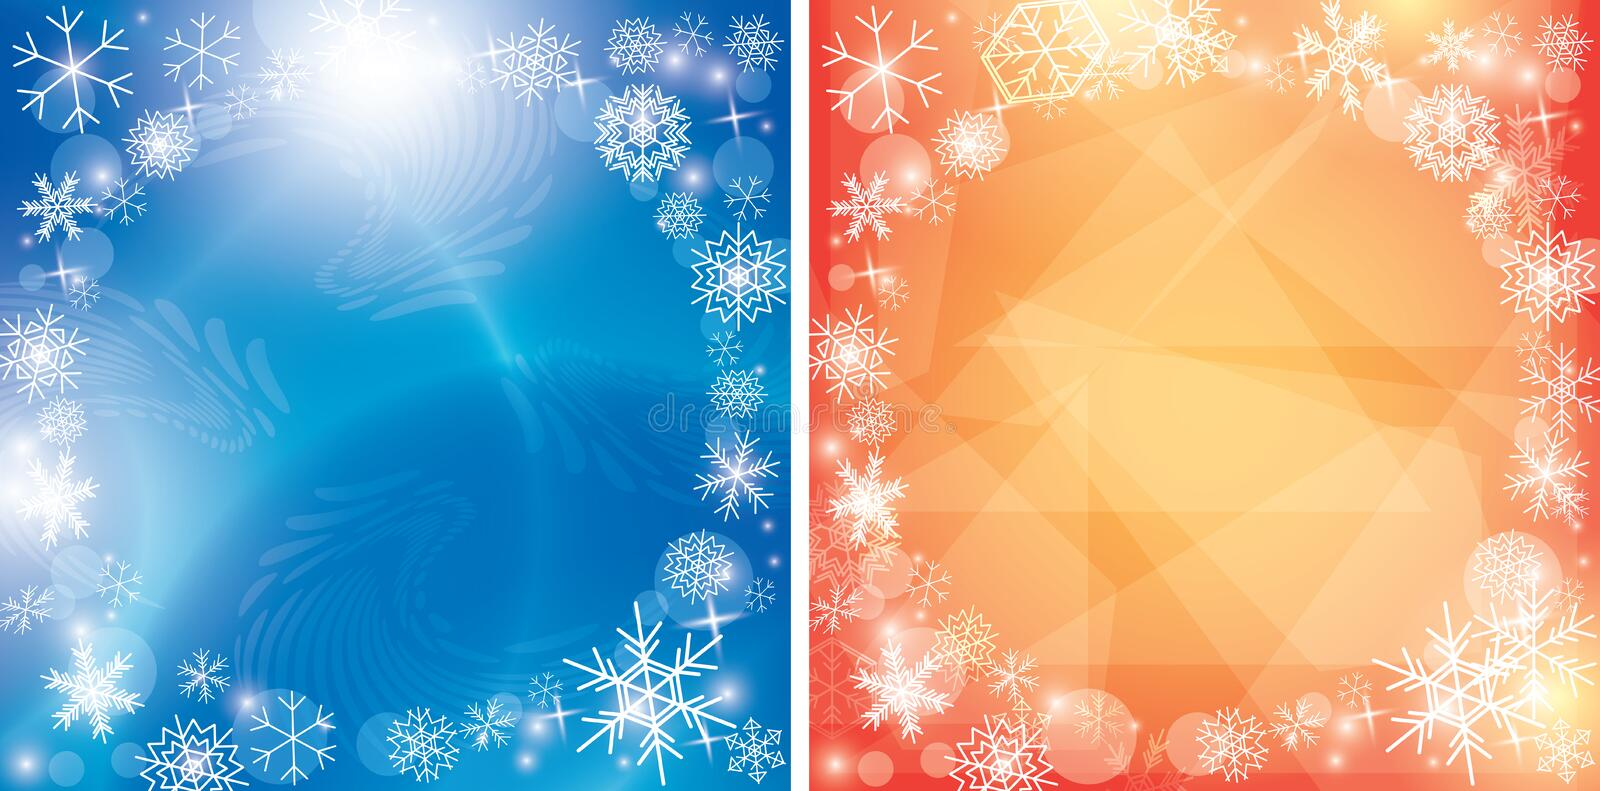 Abstract blue and orange christmas backgrounds with snowflakes - vector winter frame stock illustration